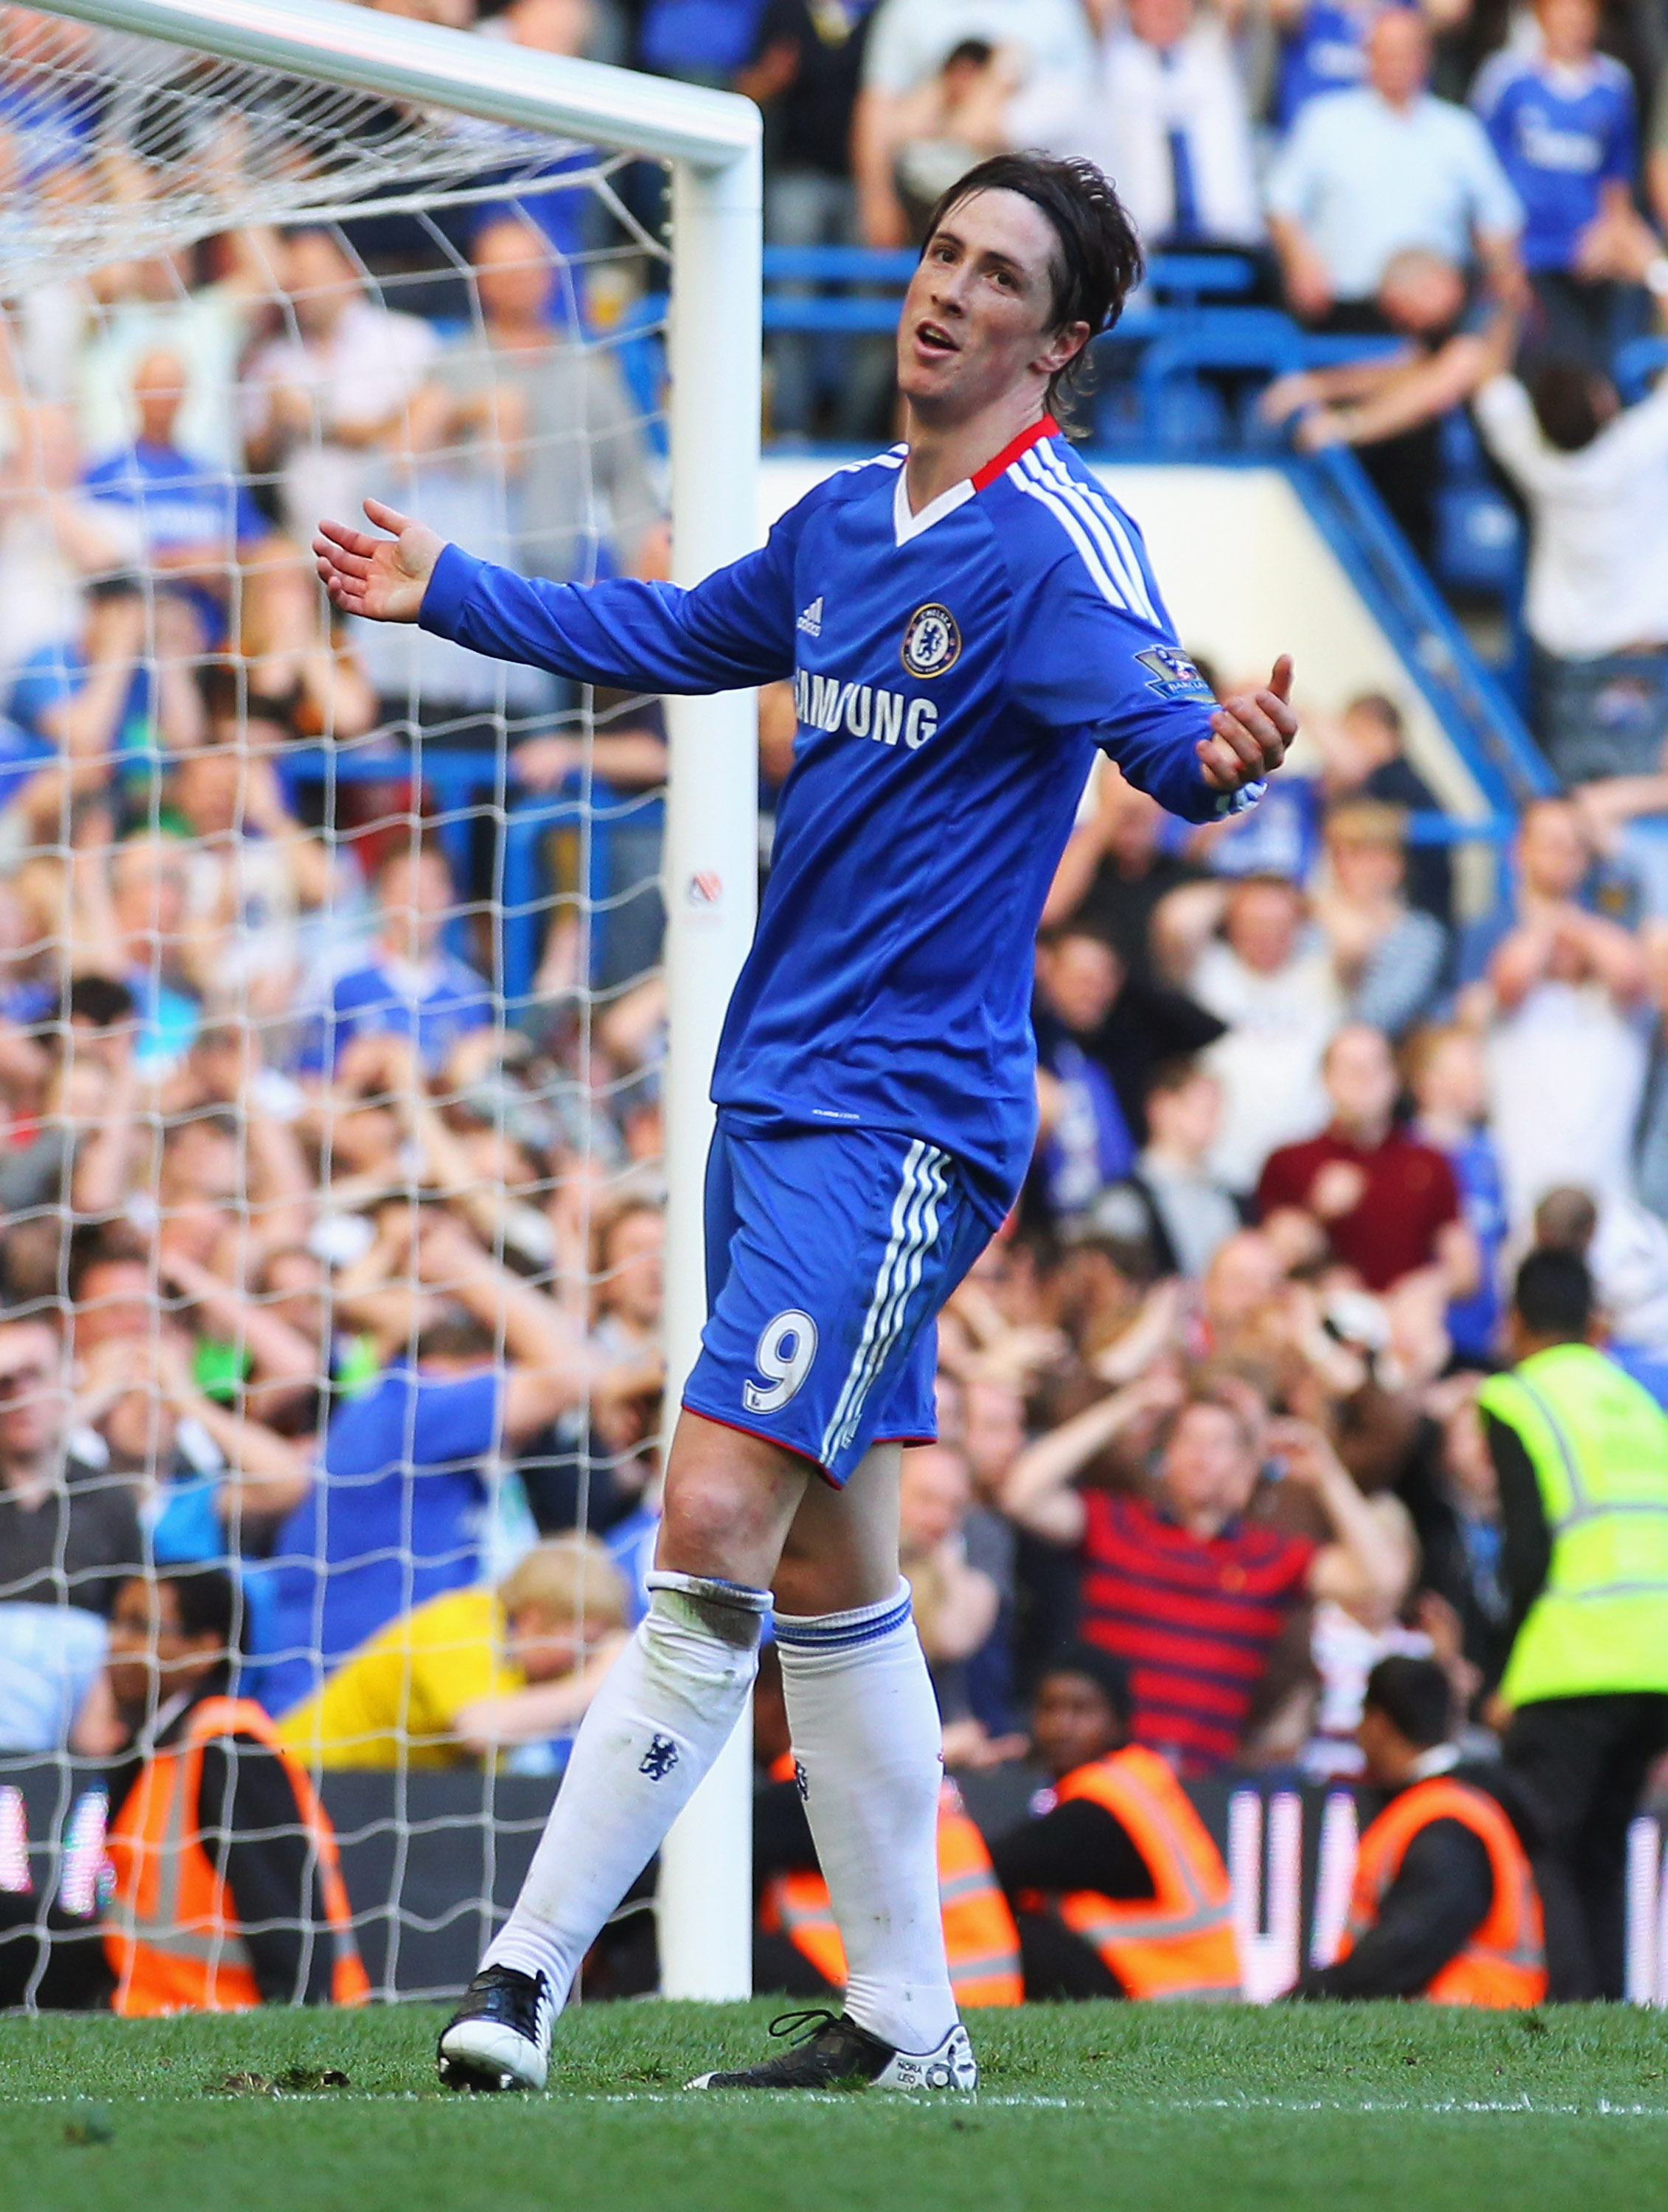 LONDON, ENGLAND - APRIL 09:  Fernando Torres of Chelsea reacts following a missed chance during the Barclays Premier League match between Chelsea and Wigan Athletic at Stamford Bridge on April 9, 2011 in London, England.  (Photo by Clive Rose/Getty Images